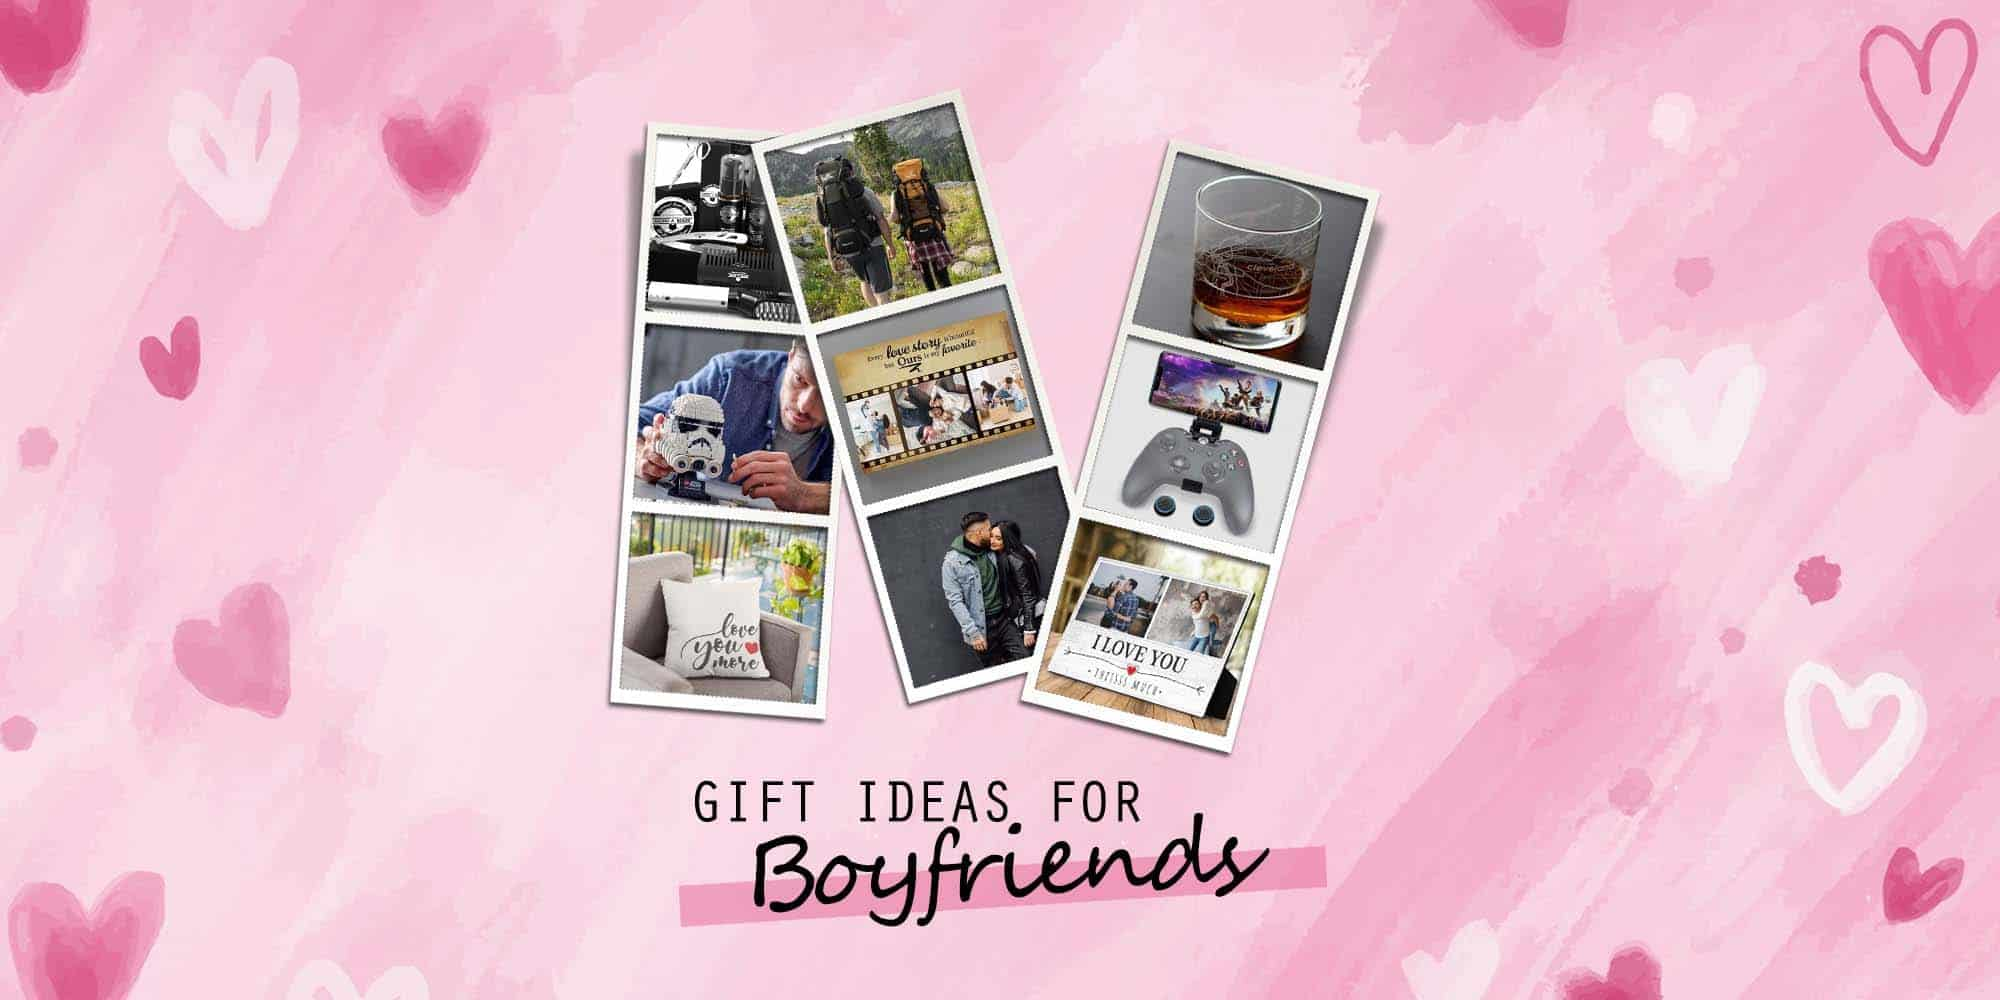 40+ Best Gift Ideas For Boyfriend For Any Occasion (2021)